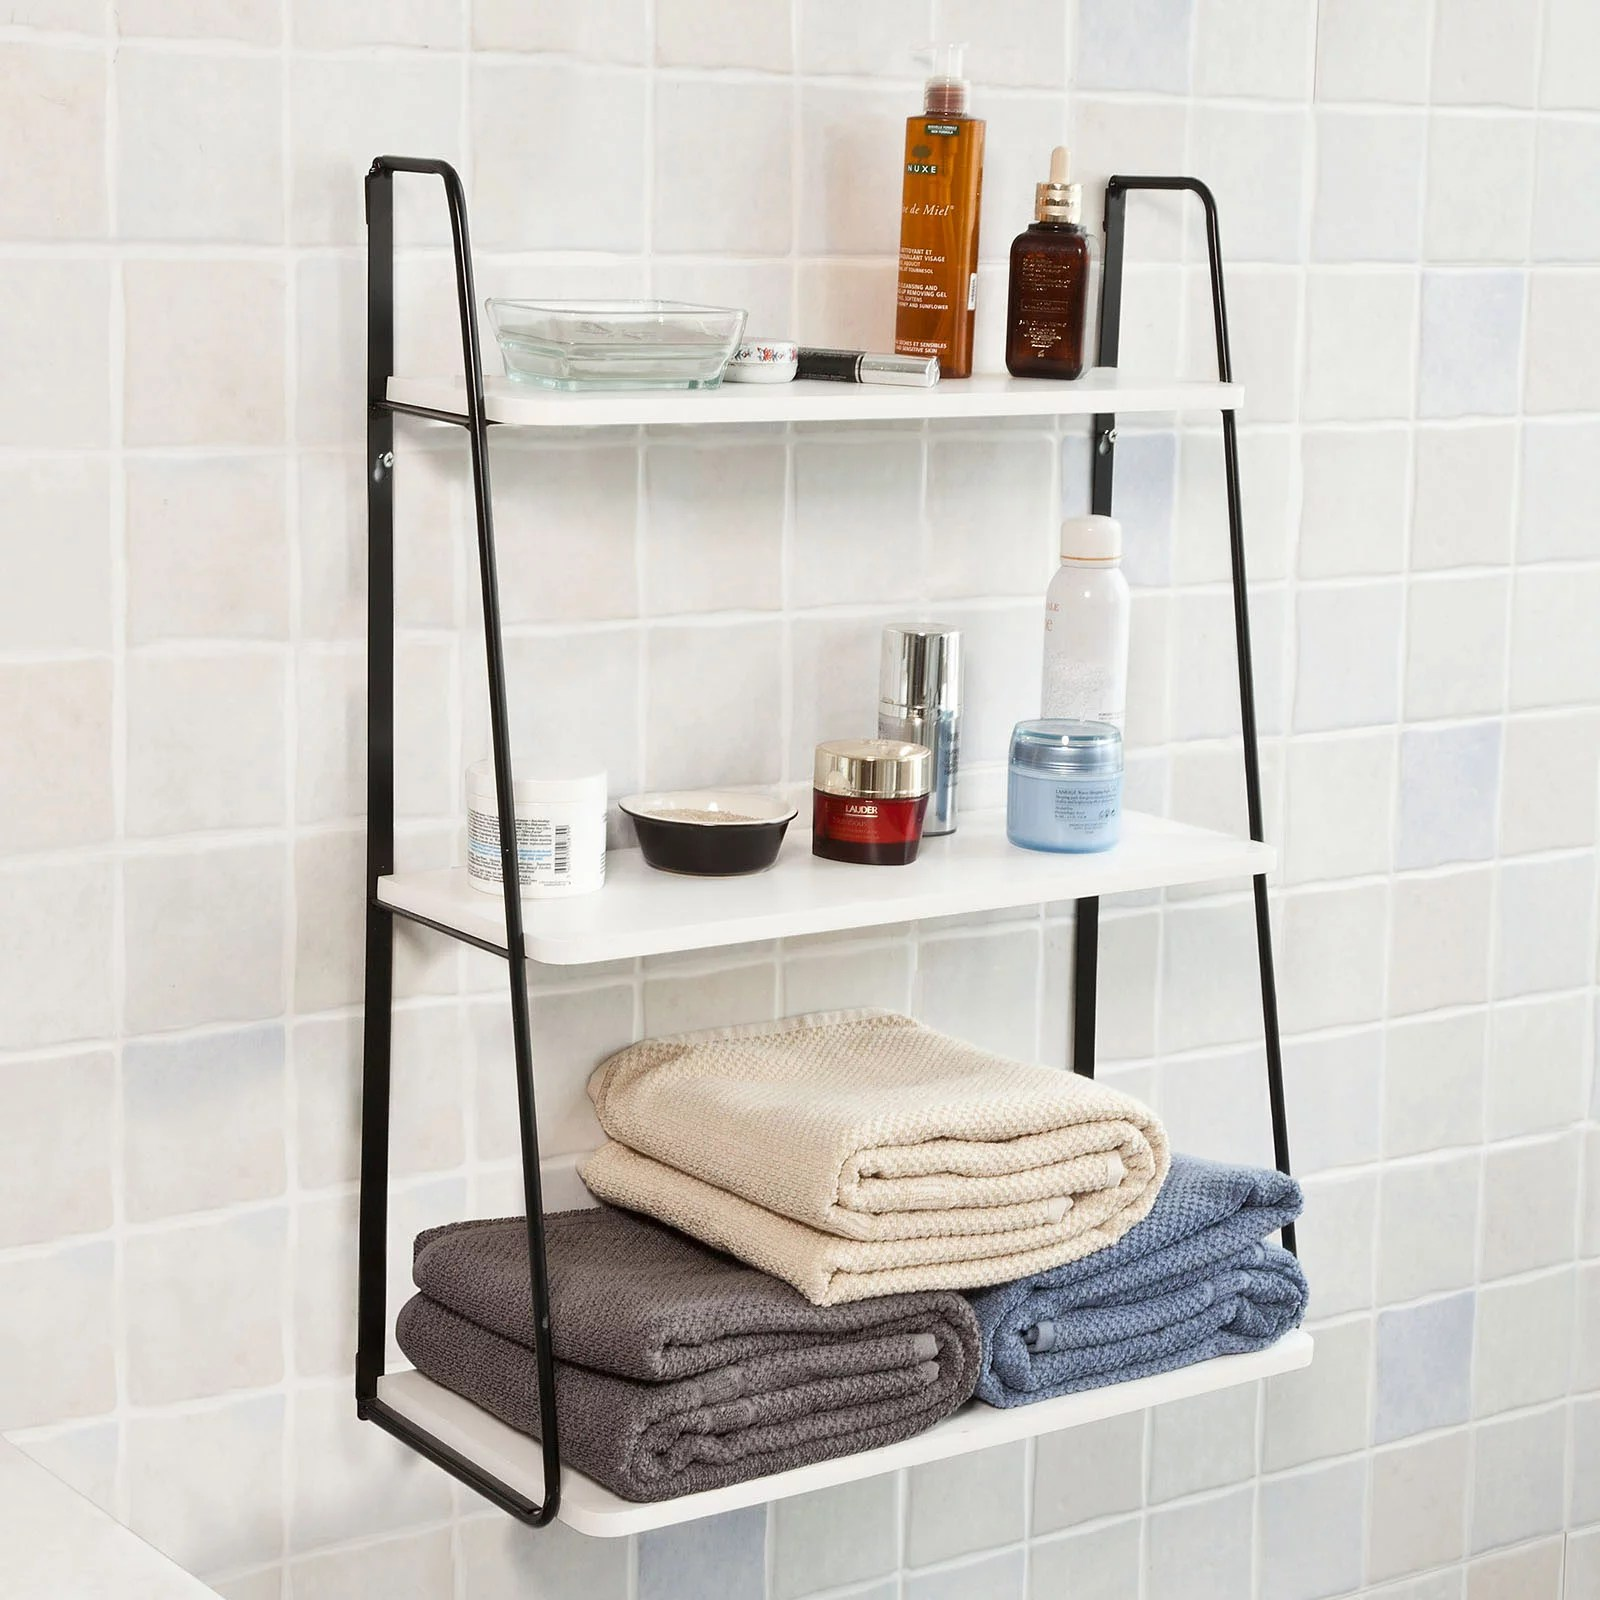 kitchen wall mounted cabinets white sink undermount haotiangroup haotian shelves rack storage